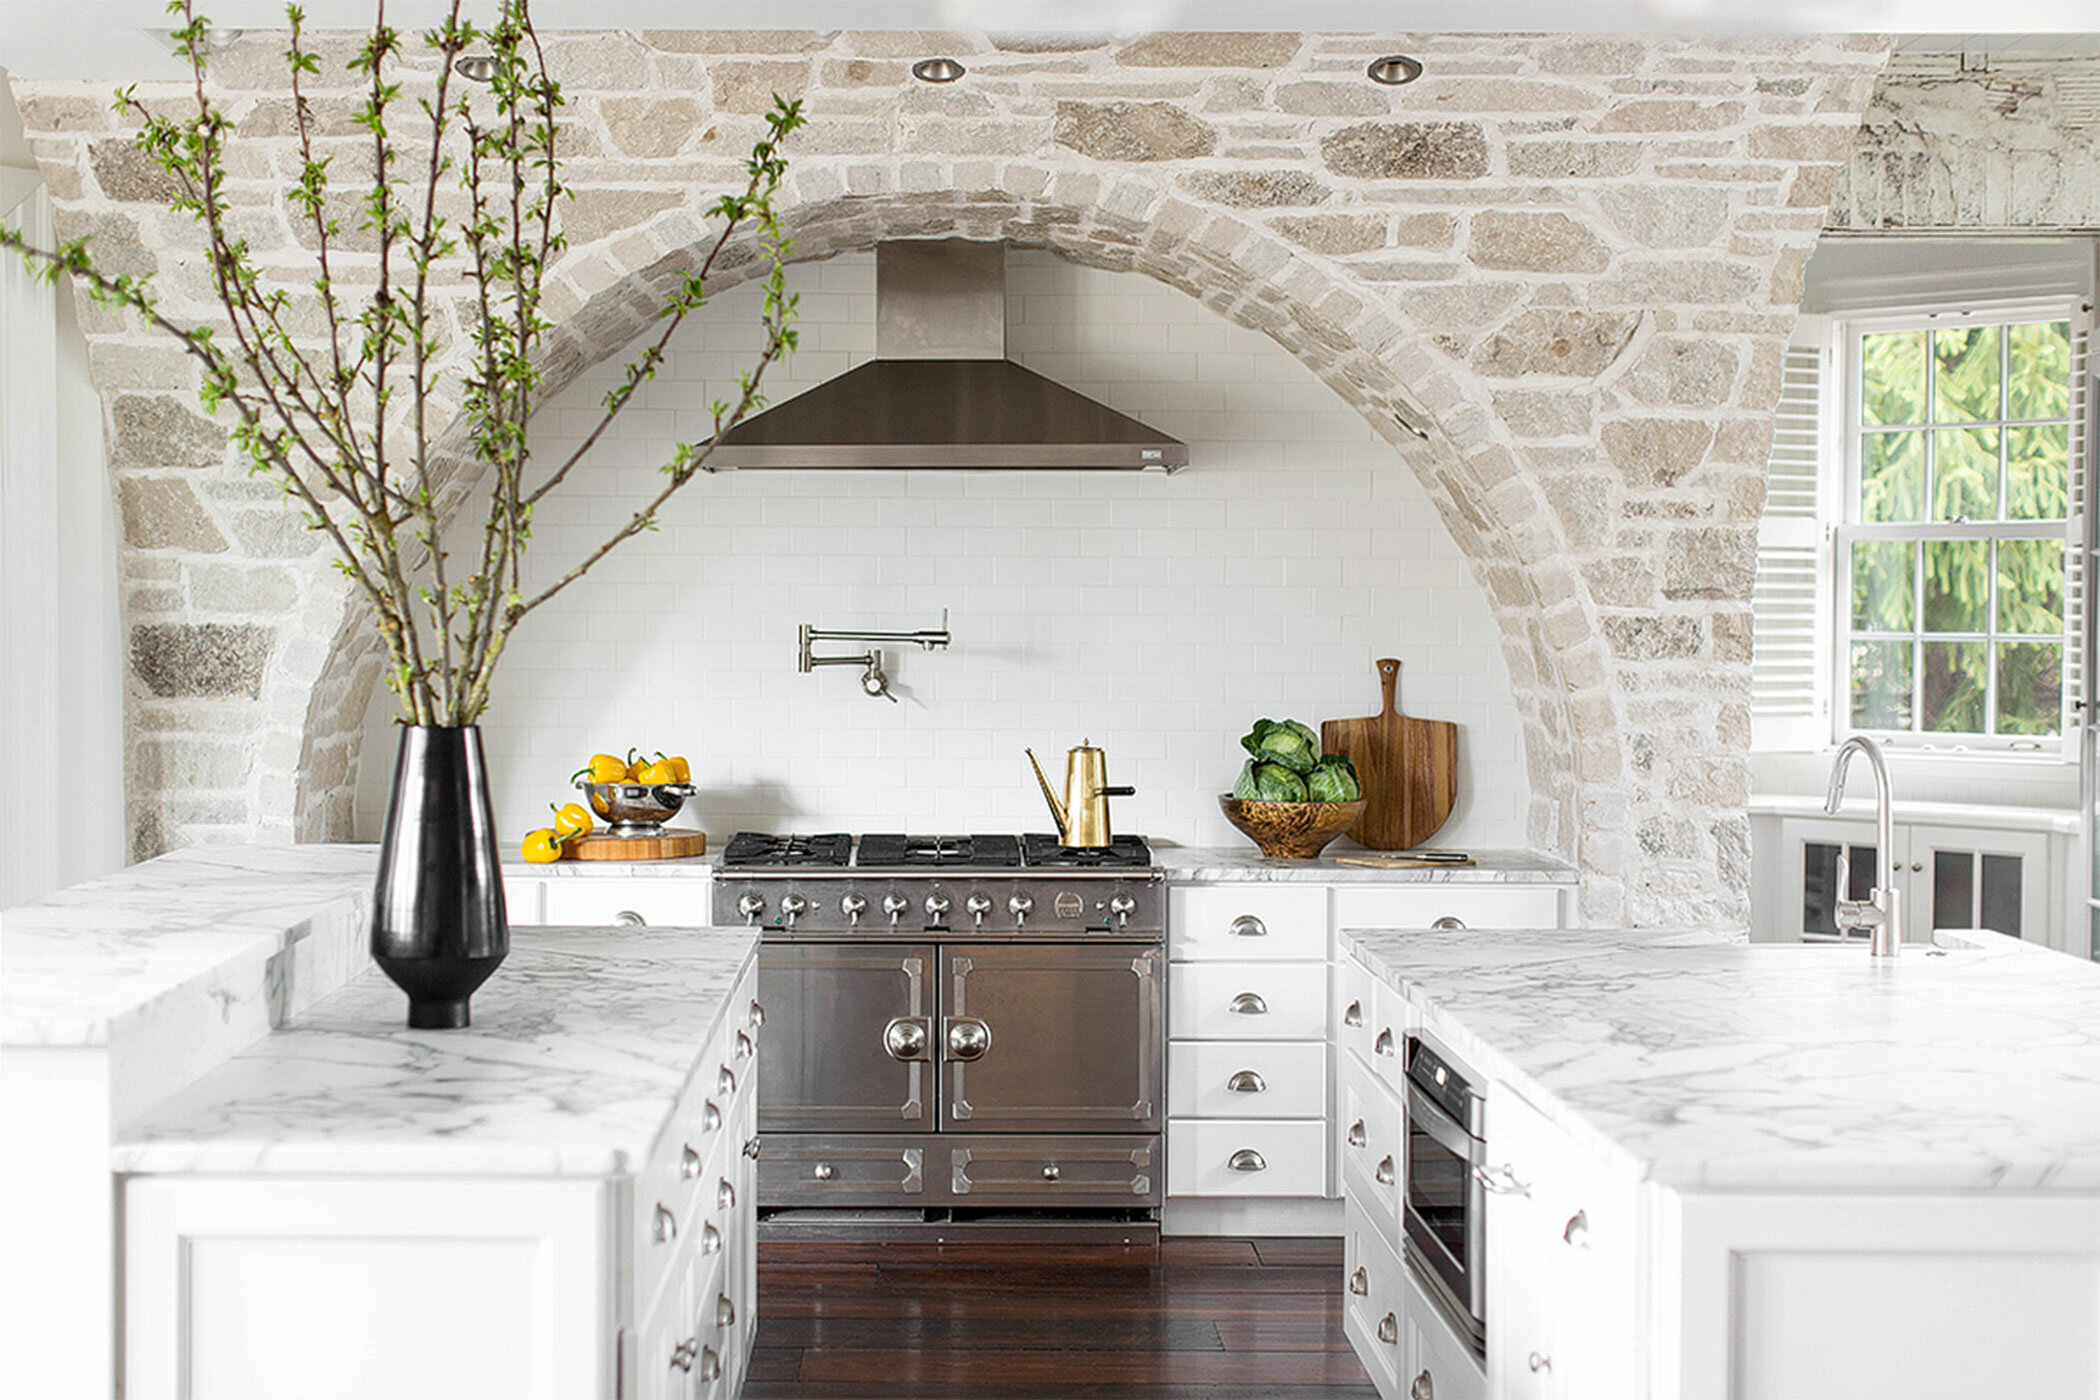 2020 Kitchen Trends.5 Kitchen Trends To Try In 2020 Wayfair